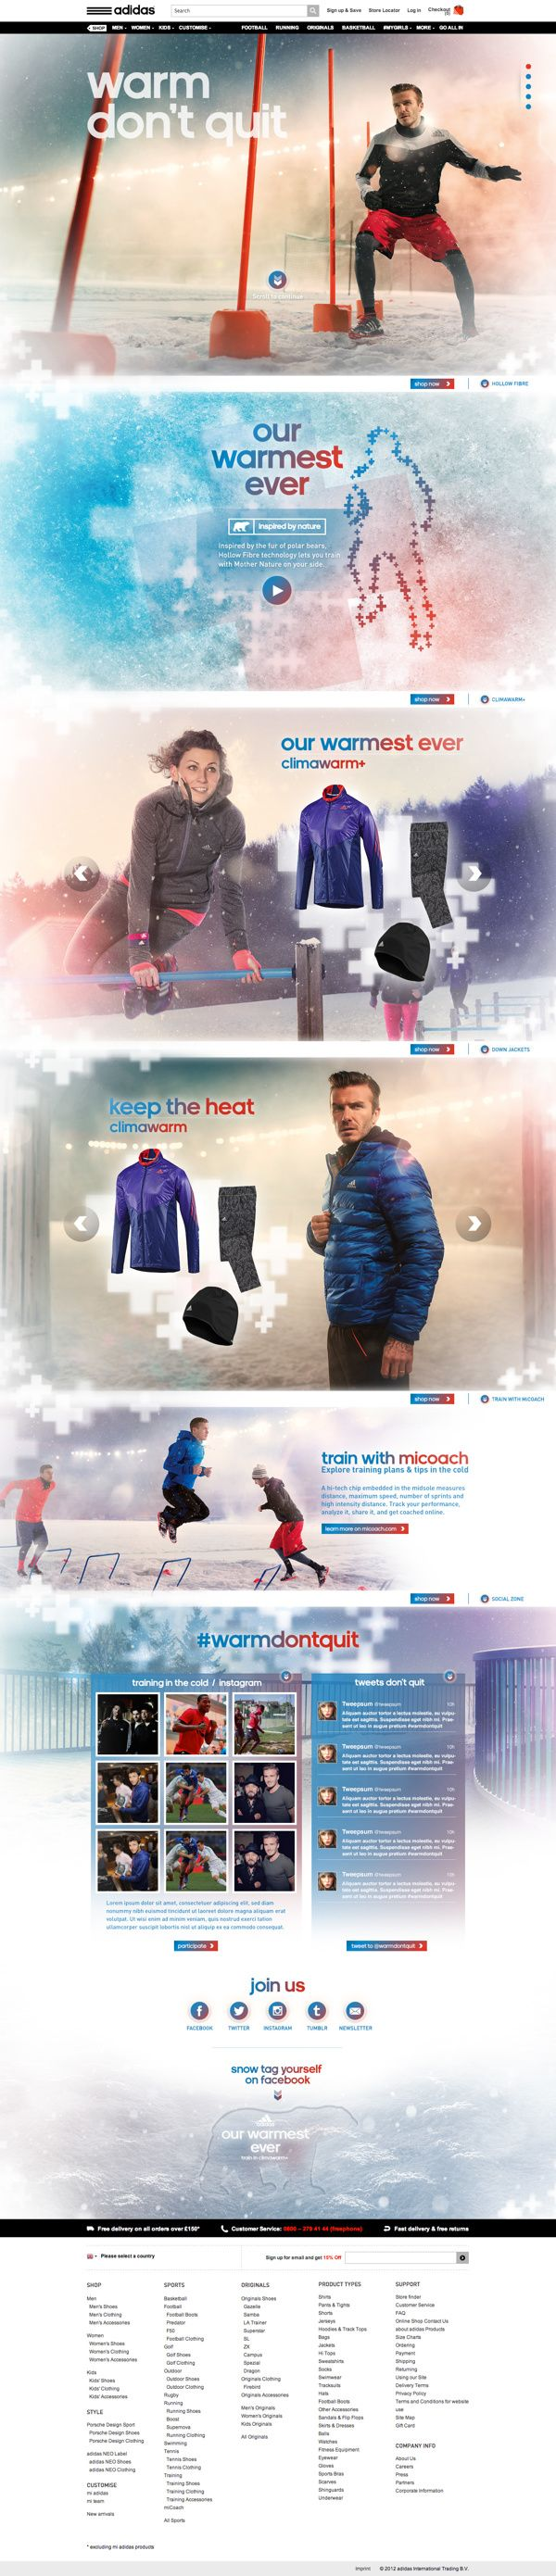 Adidas – Climawarm collection microsite